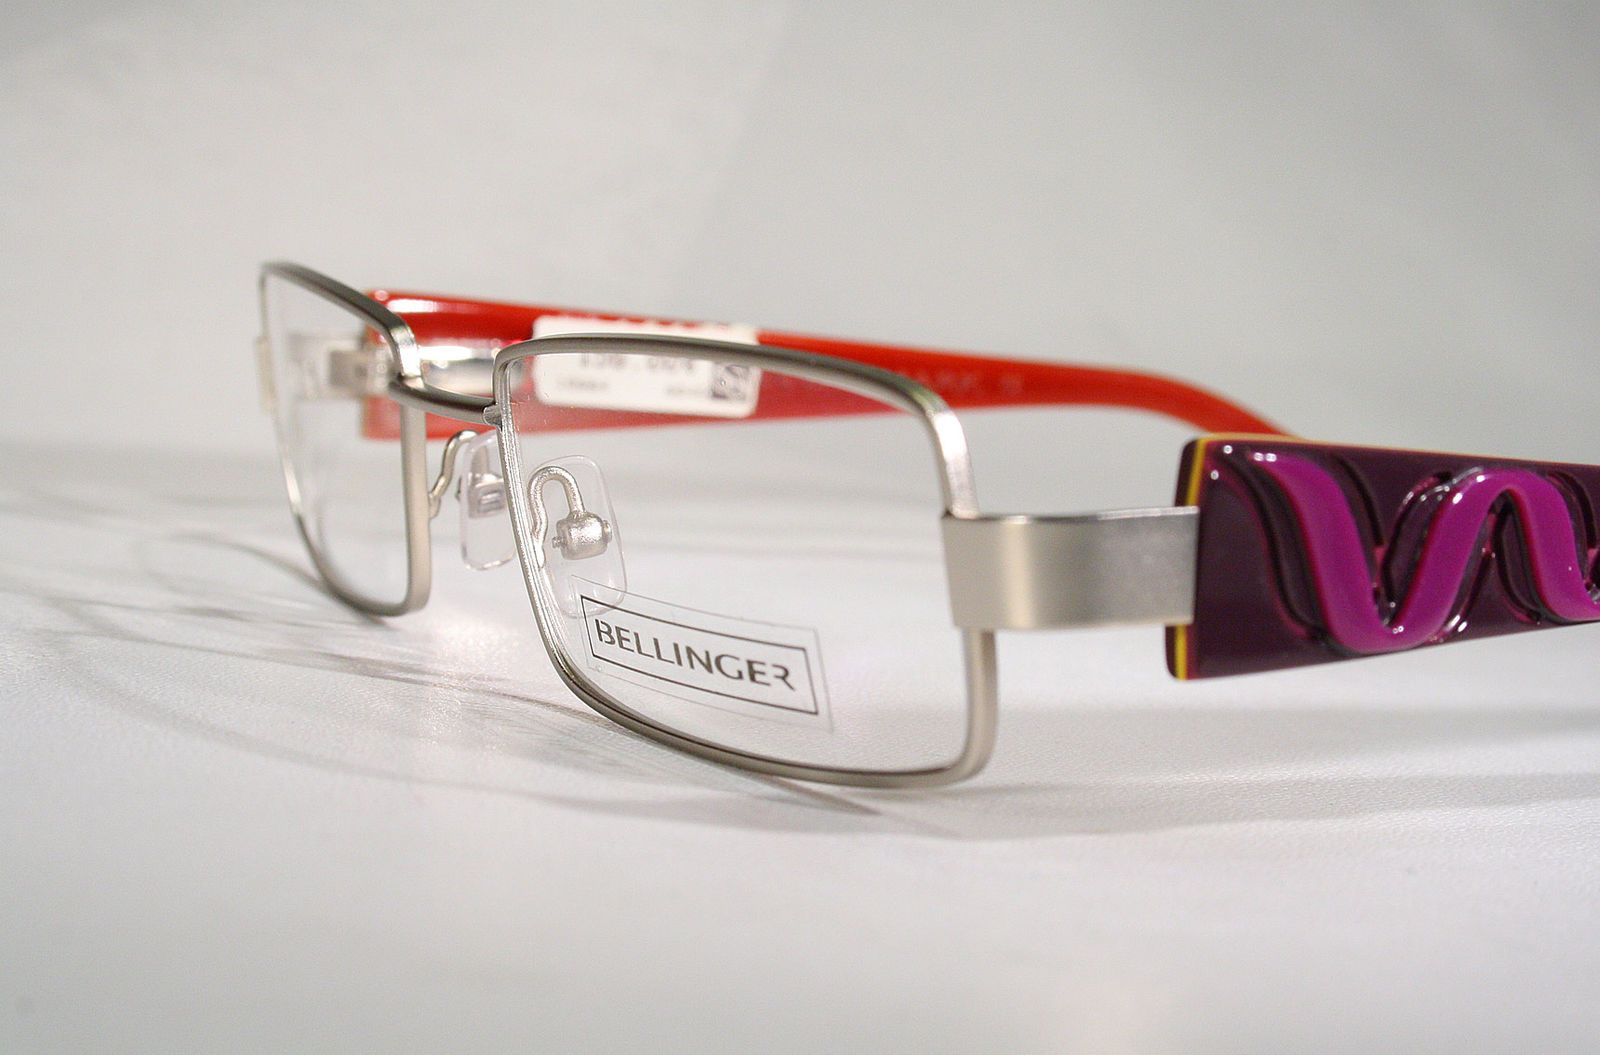 3a9413597f BELLINGER Satin Silver Nordic Eyeglass Frames Glasses with Monstrous  Looking Lilac Snap-On Temples